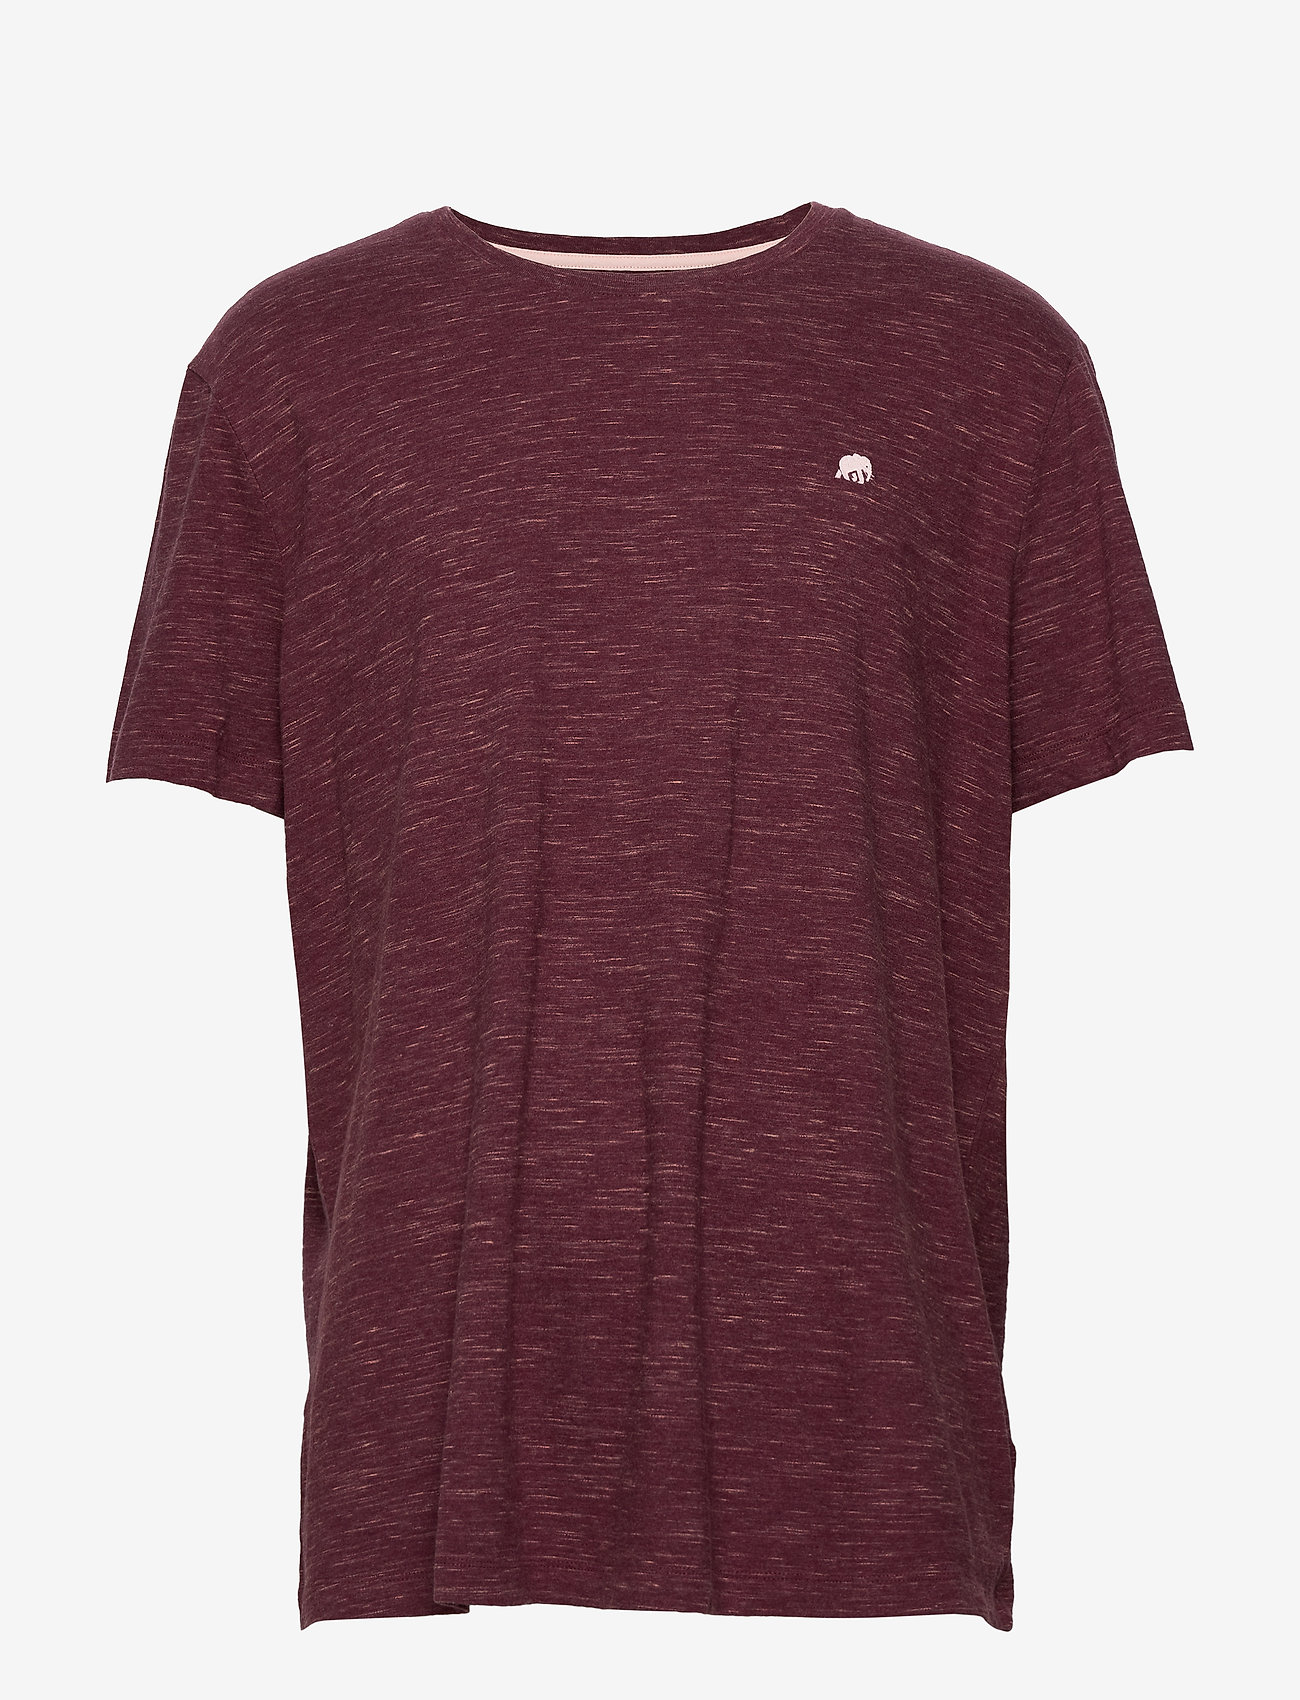 Banana Republic - I LOGO SOFTWASH ORGANIC TEE - basic t-shirts - dark maroon - 0